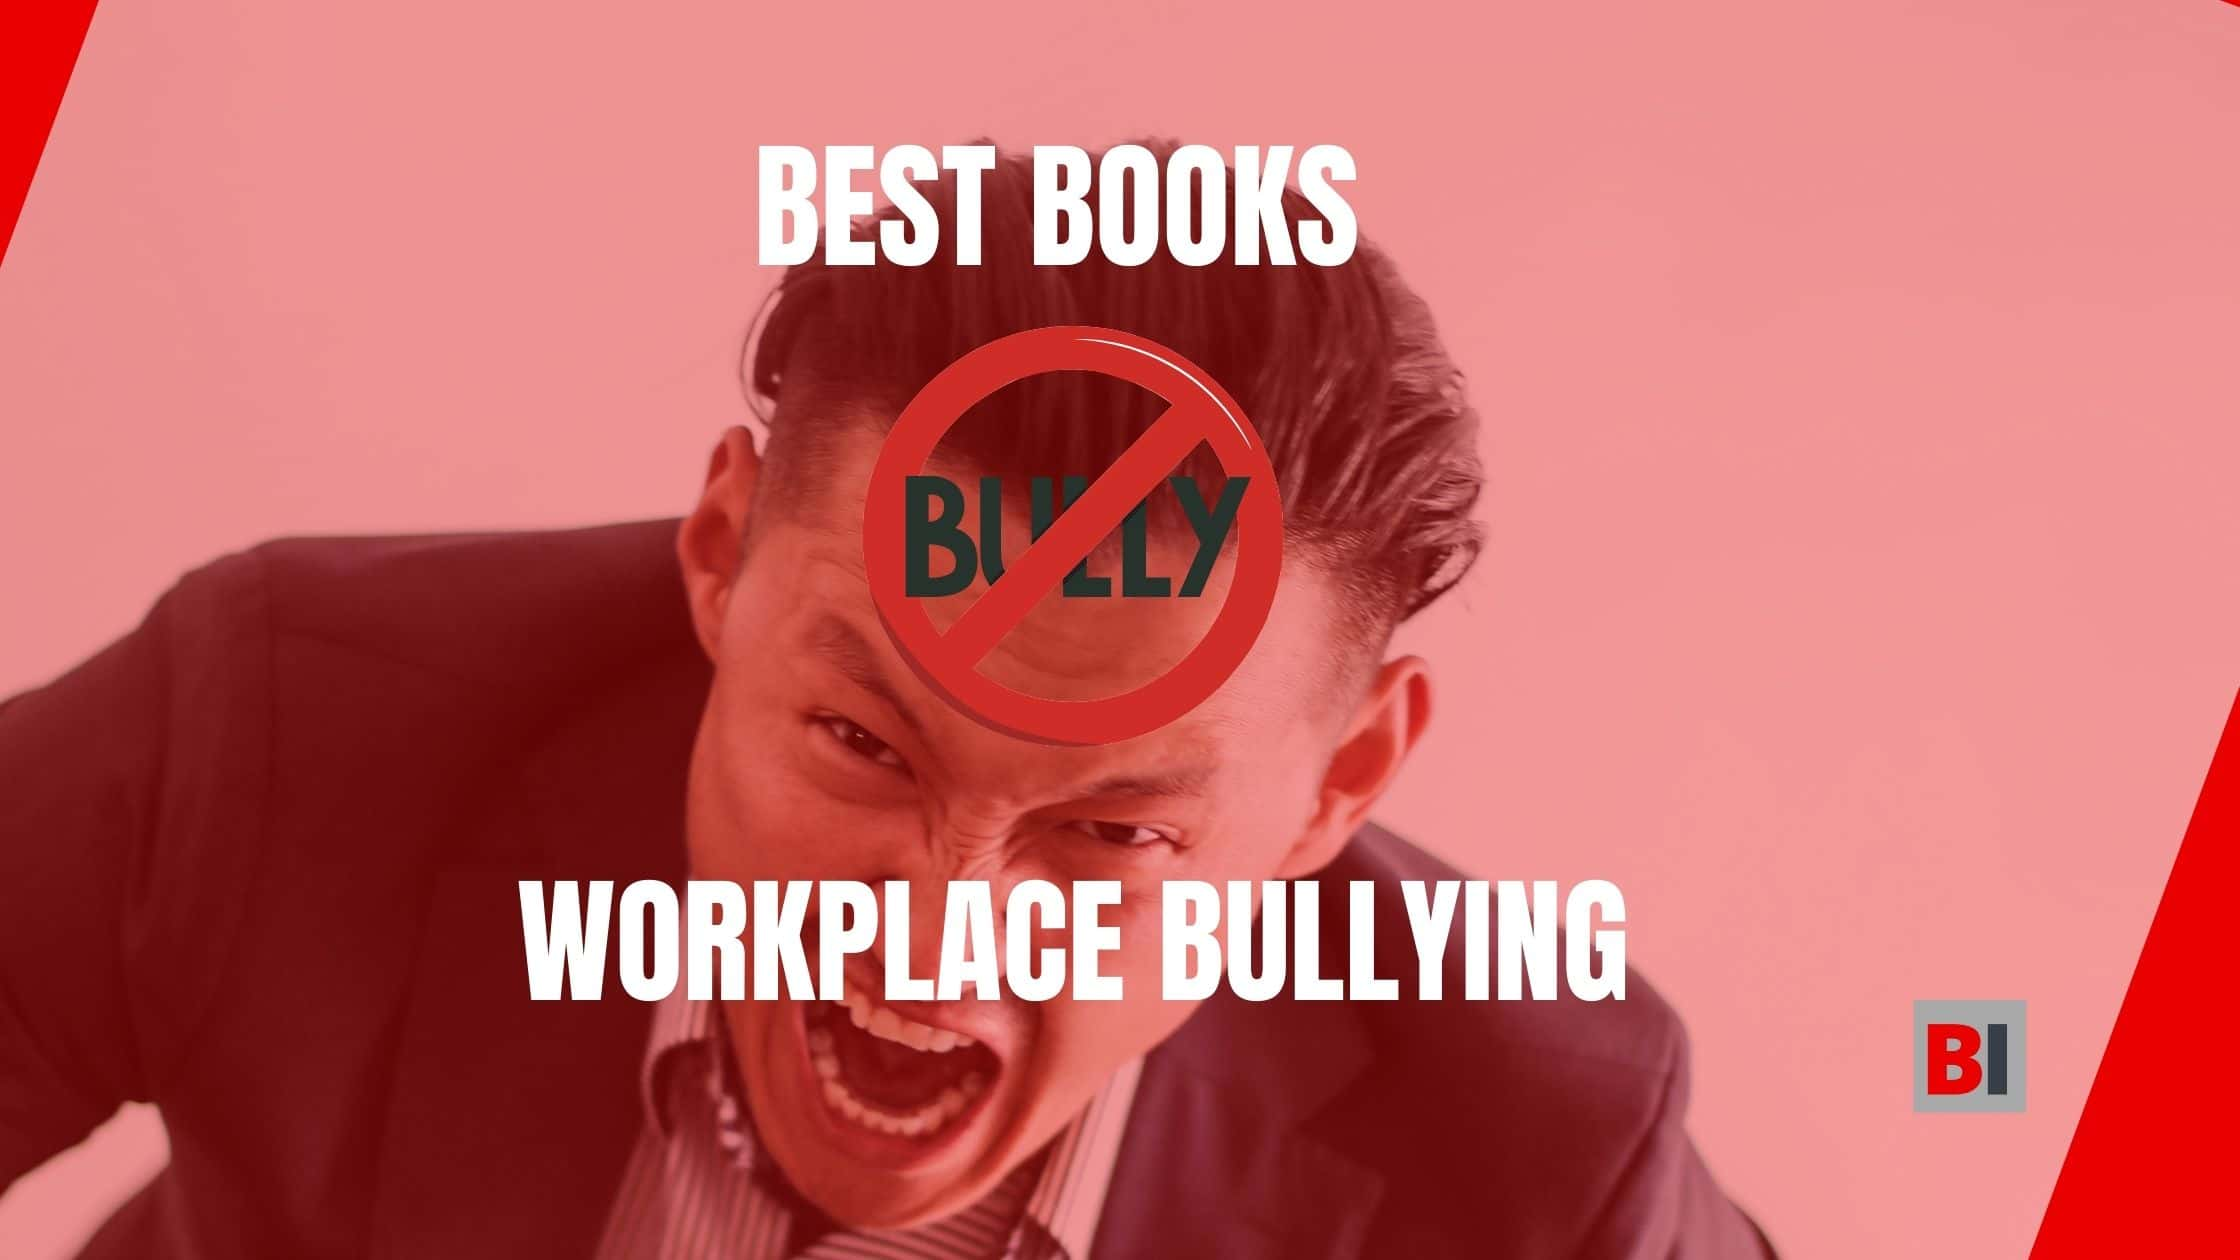 Best Books on Workplace Bullying